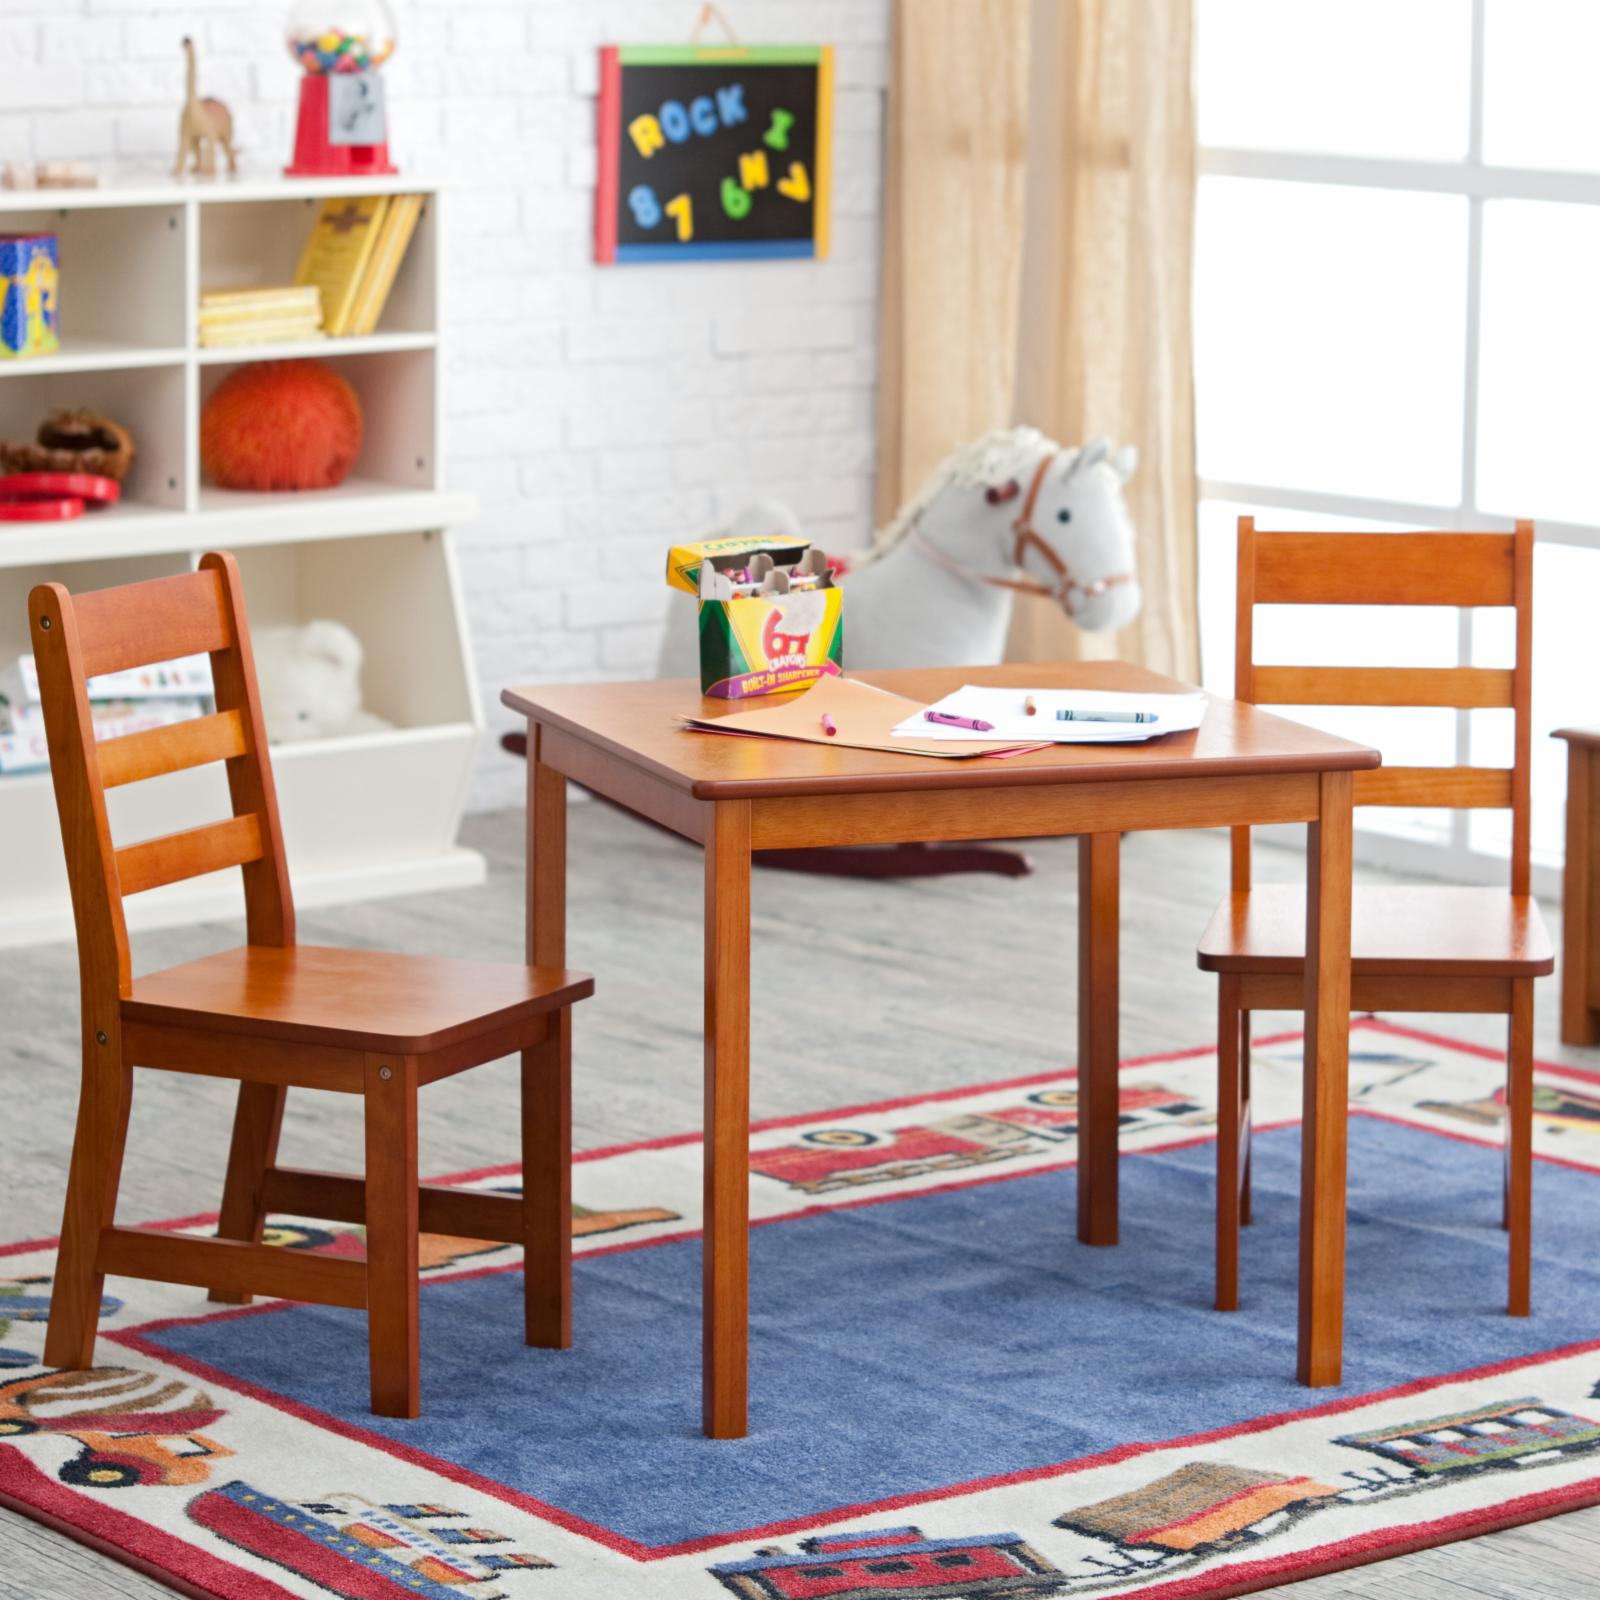 Lipper Childrens Square Table and Chair Set - 514P